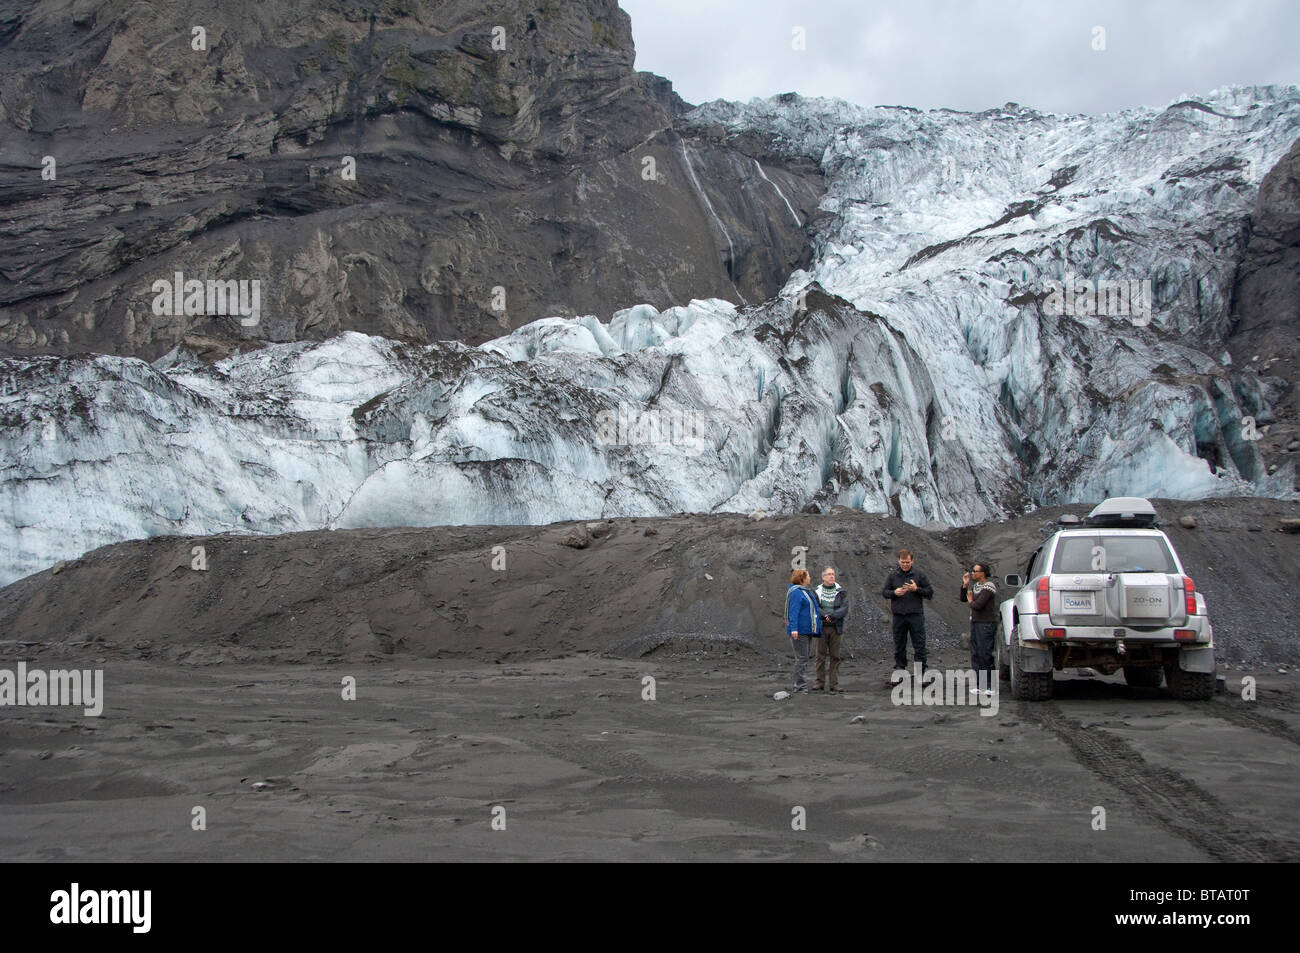 Iceland, Porsmork Park, Gigjokull glacier after the 2010 spring eruption of Eyjafjallajokull volcano. 4x4 jeep tour. - Stock Image